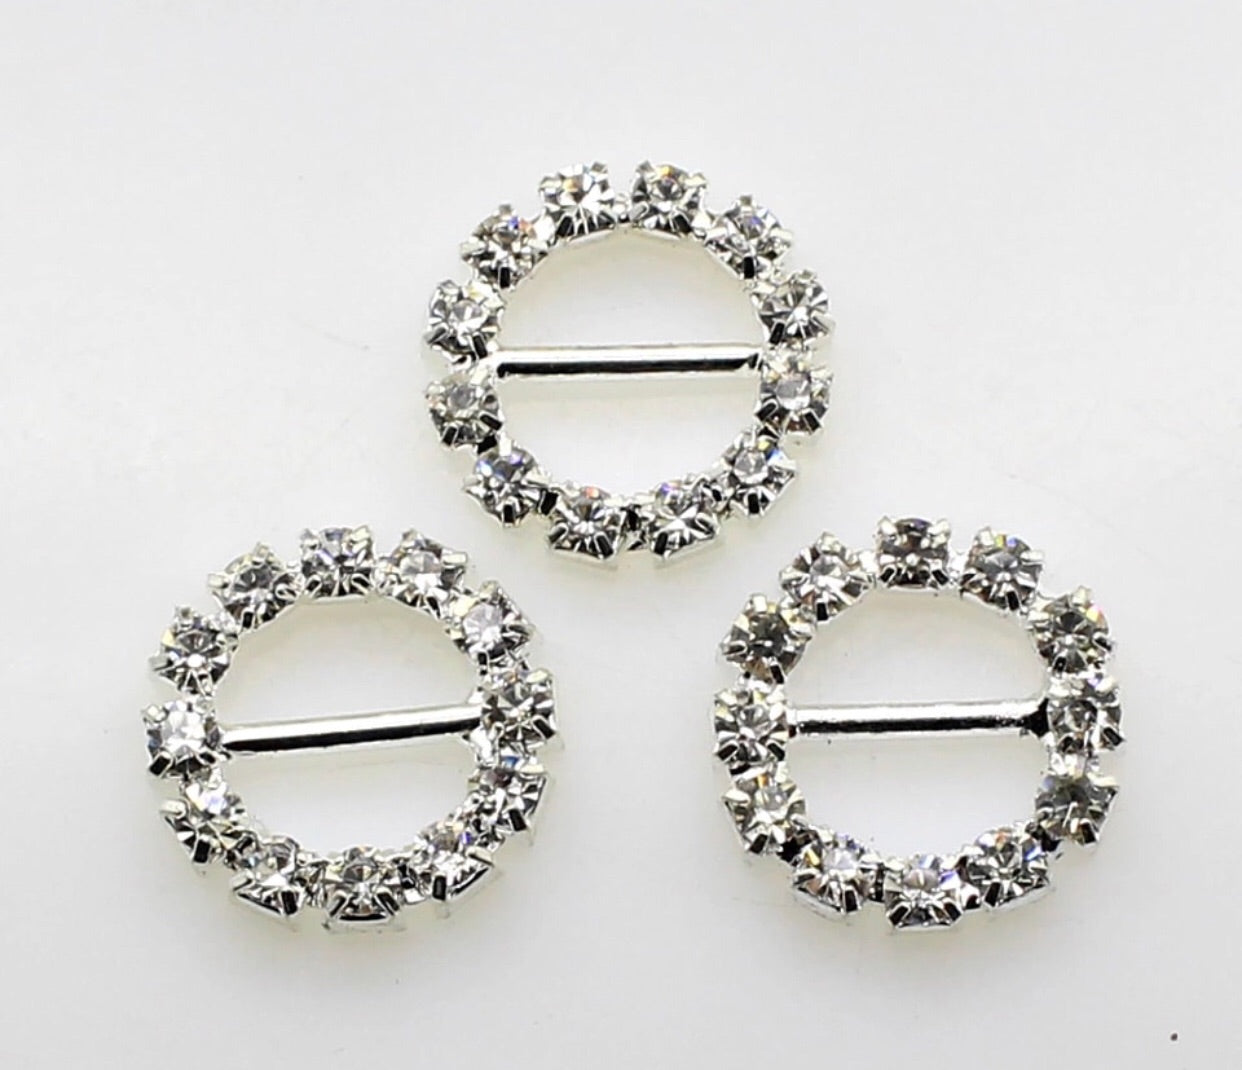 Embellishment - Rhinestone Buckle - Circle - shabbyflowers.com